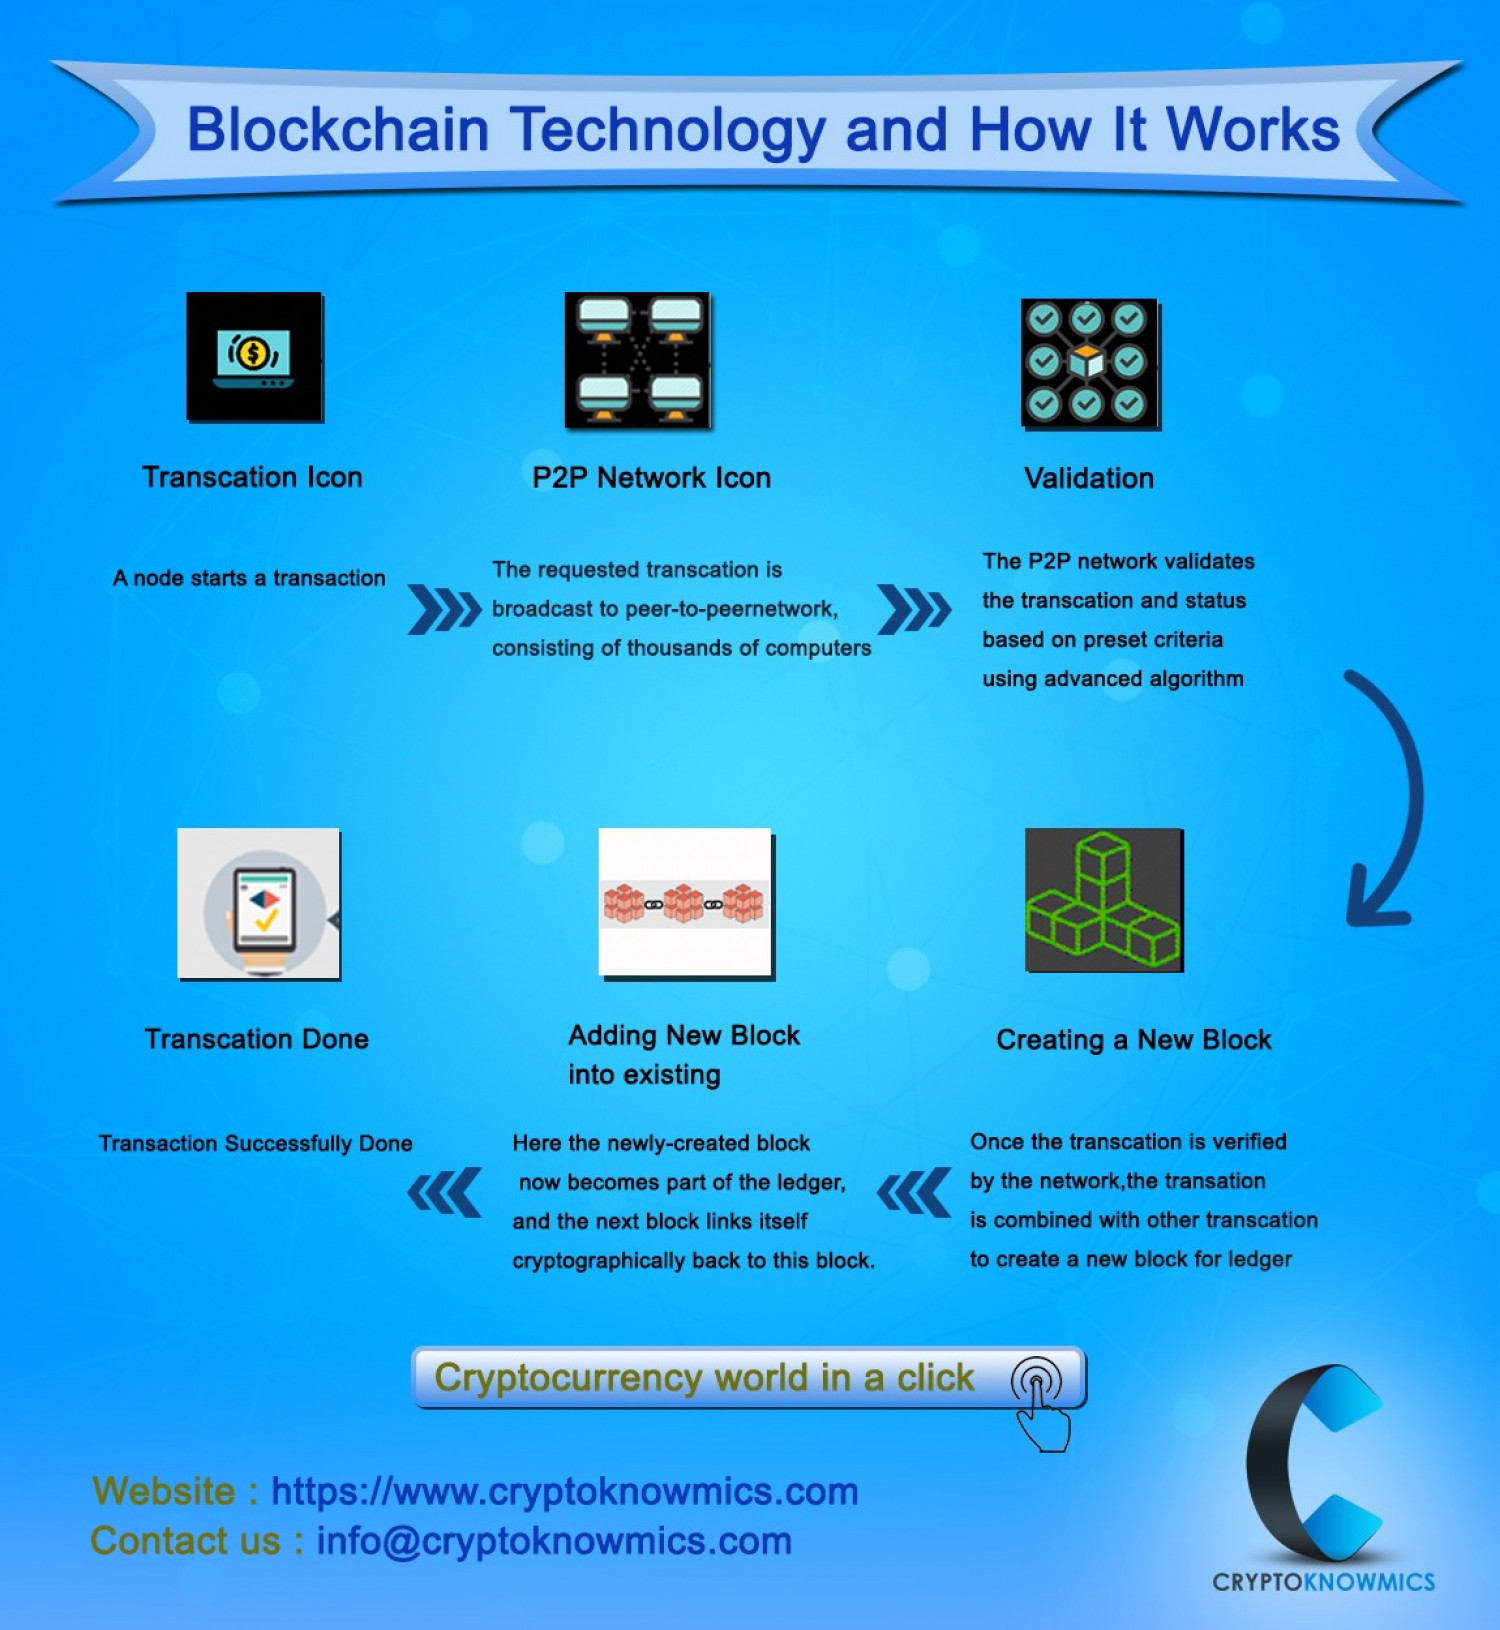 Blockchain Technology and How It Works